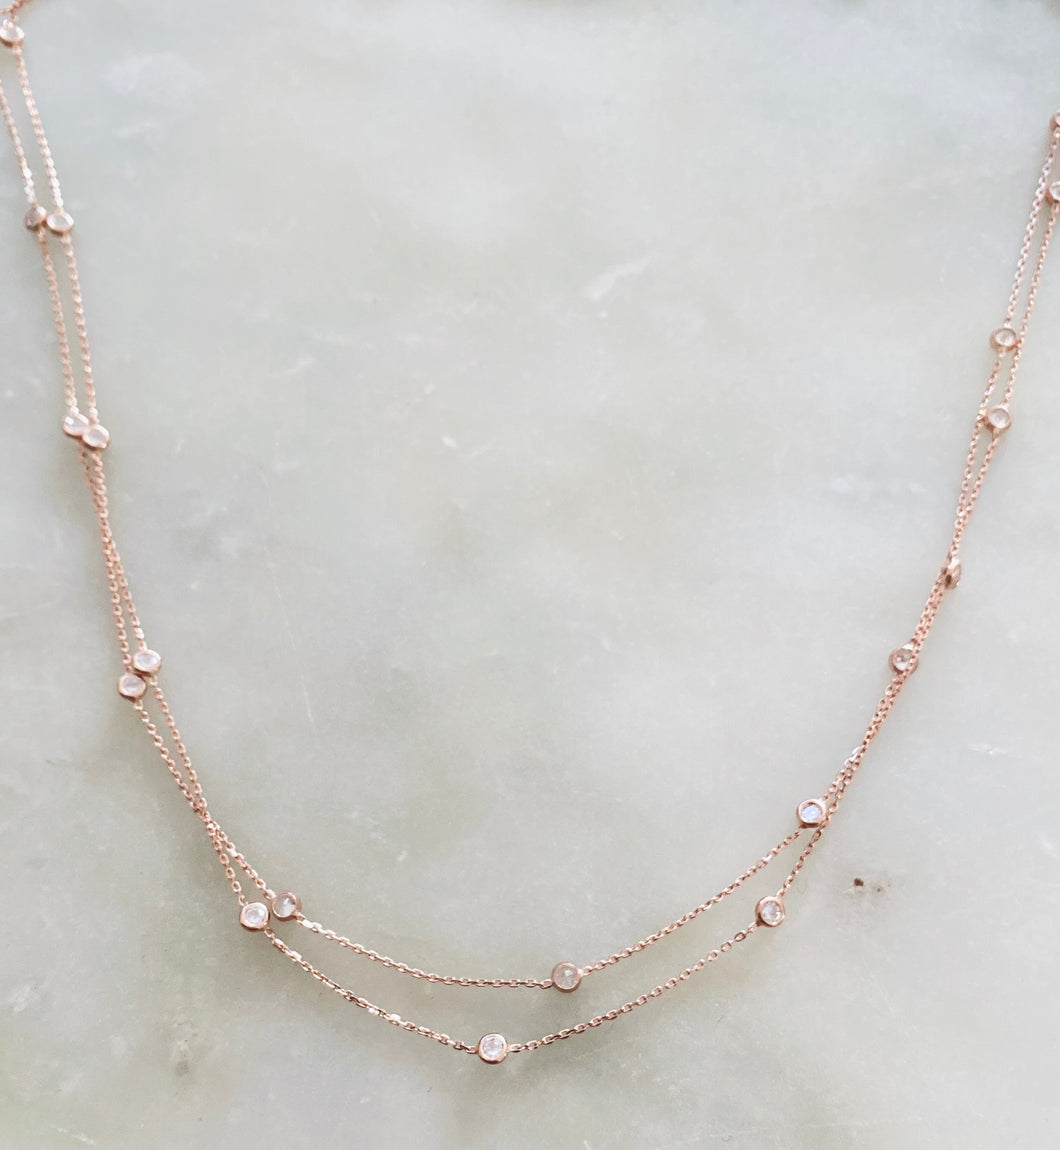 Sprinkle Necklace - Rose Gold Filled with diamonte